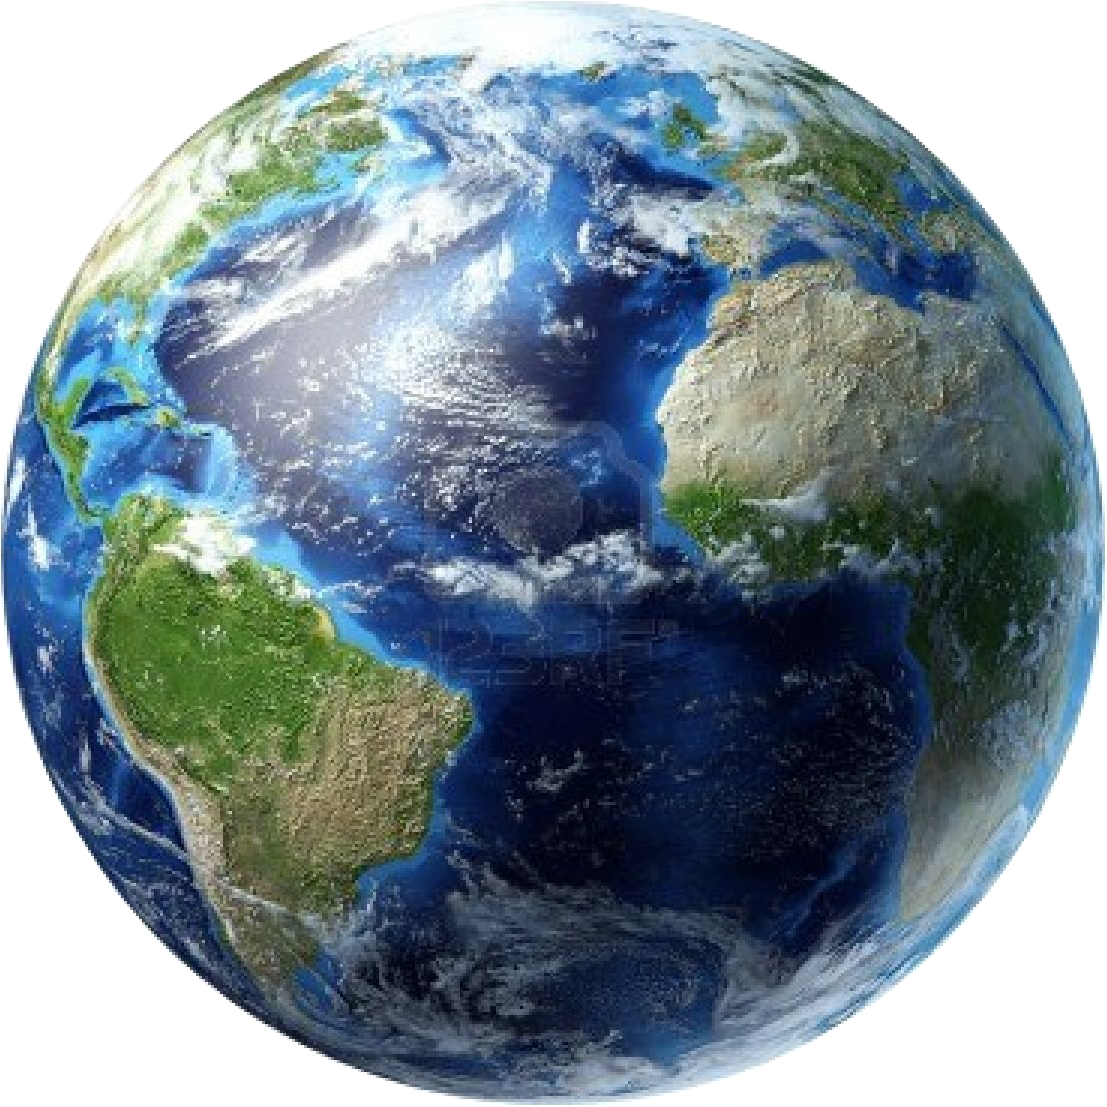 Earth PNG Image - PurePNG | Free transparent CC0 PNG Image ...